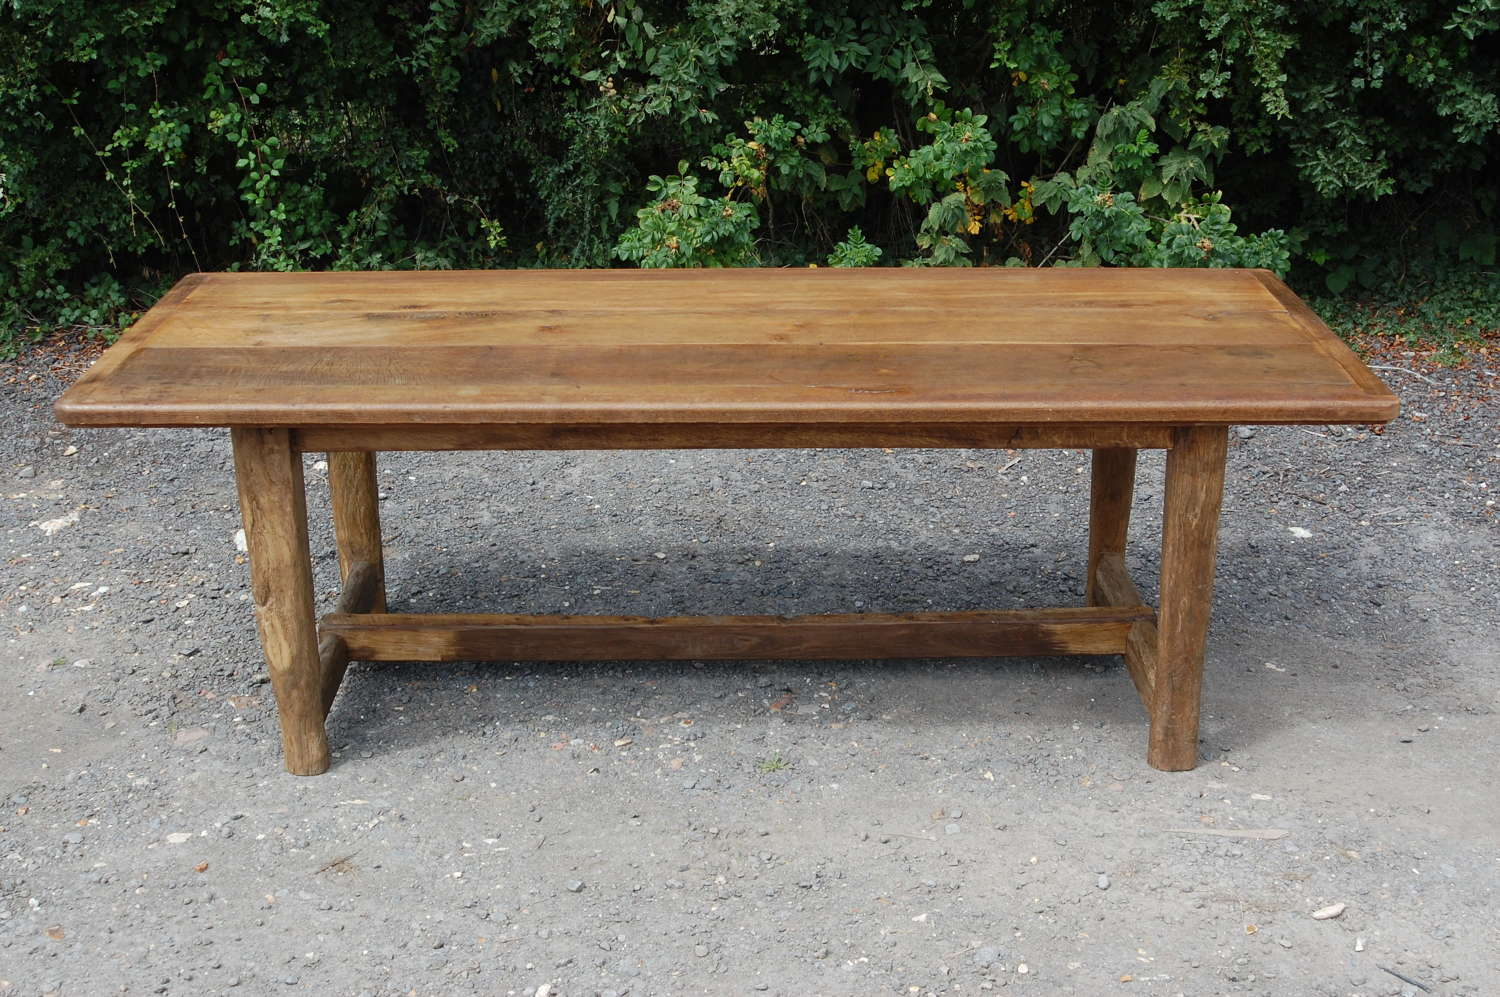 M1395 RUSTIC 8 SEATER DINING TABLE MADE USING RECLAIMED OAK